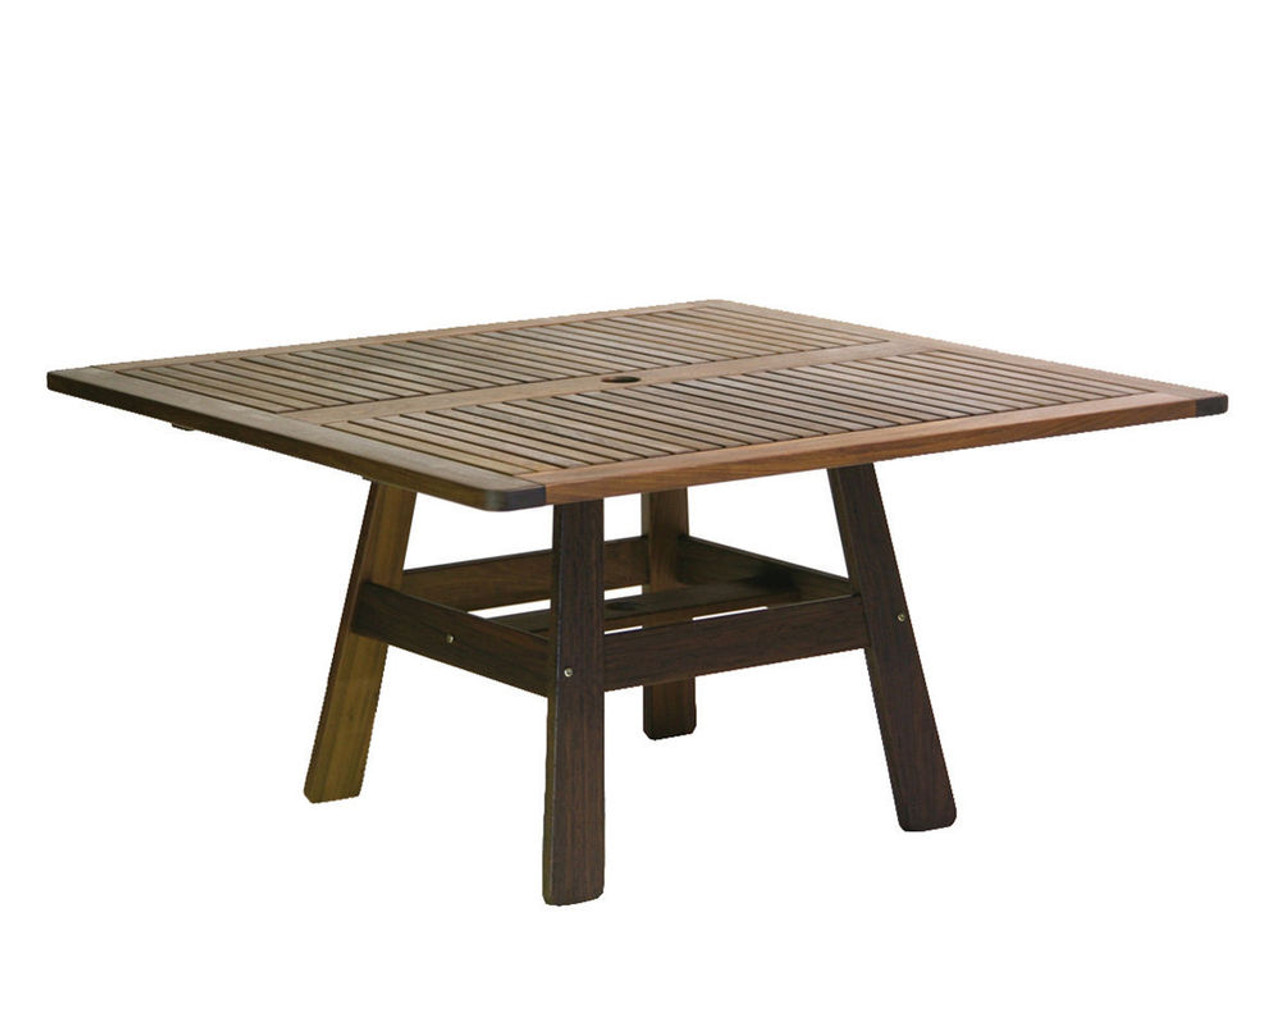 chair dining threshold slat leisure becker furniture patio w back products jensen item trim diningchair b governor width height